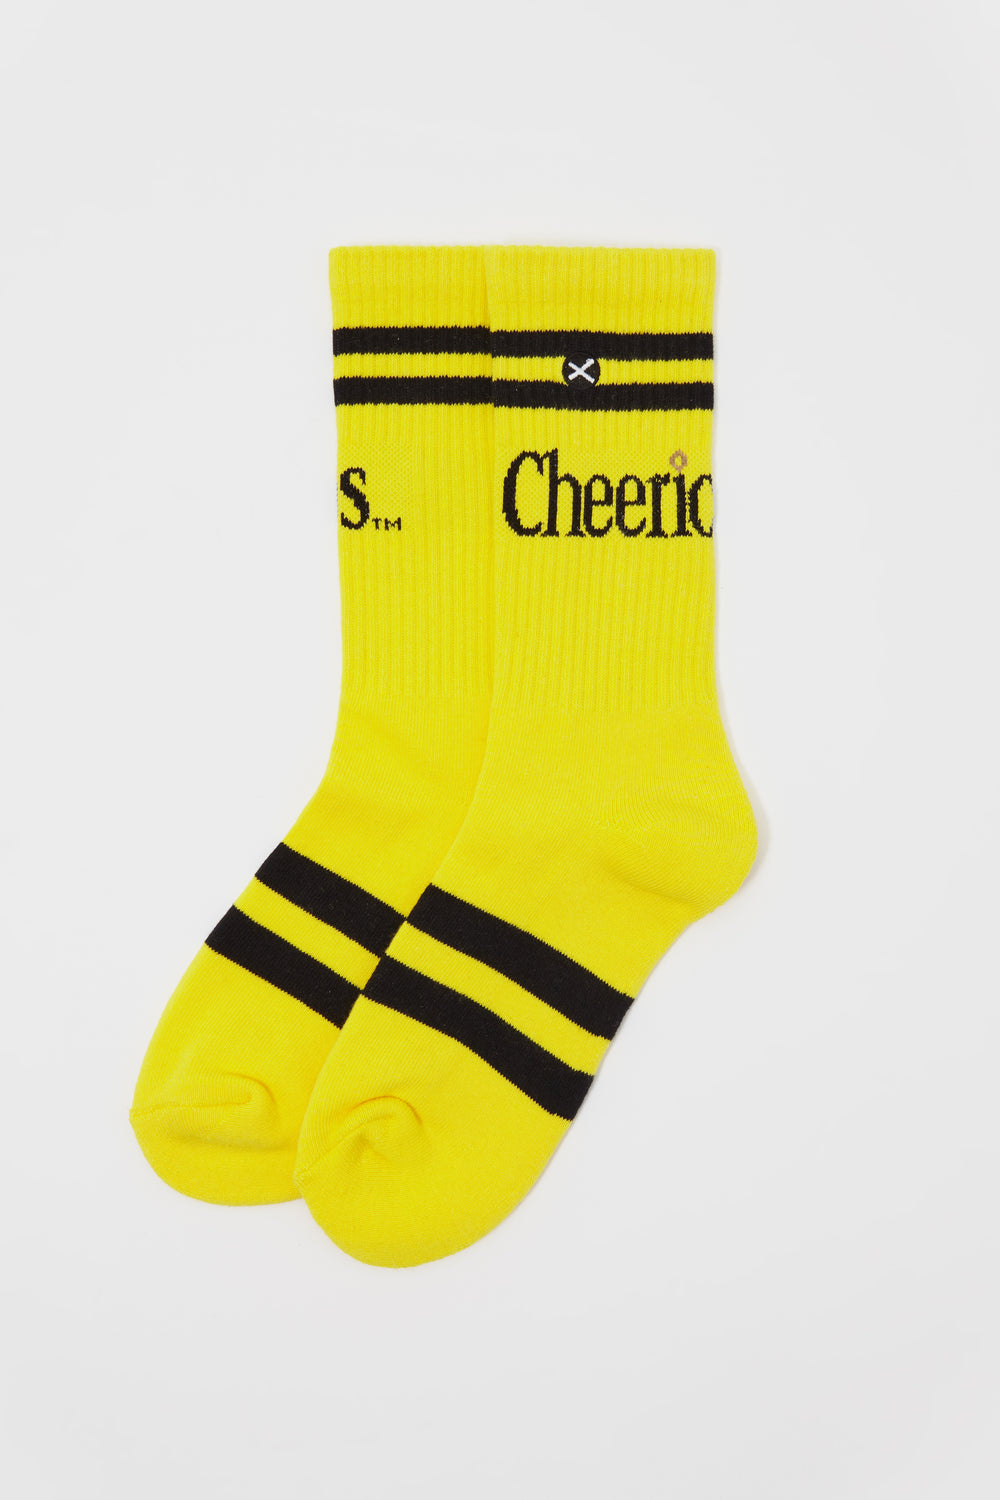 Chaussettes Odd Sox Cheerios Homme Jaune